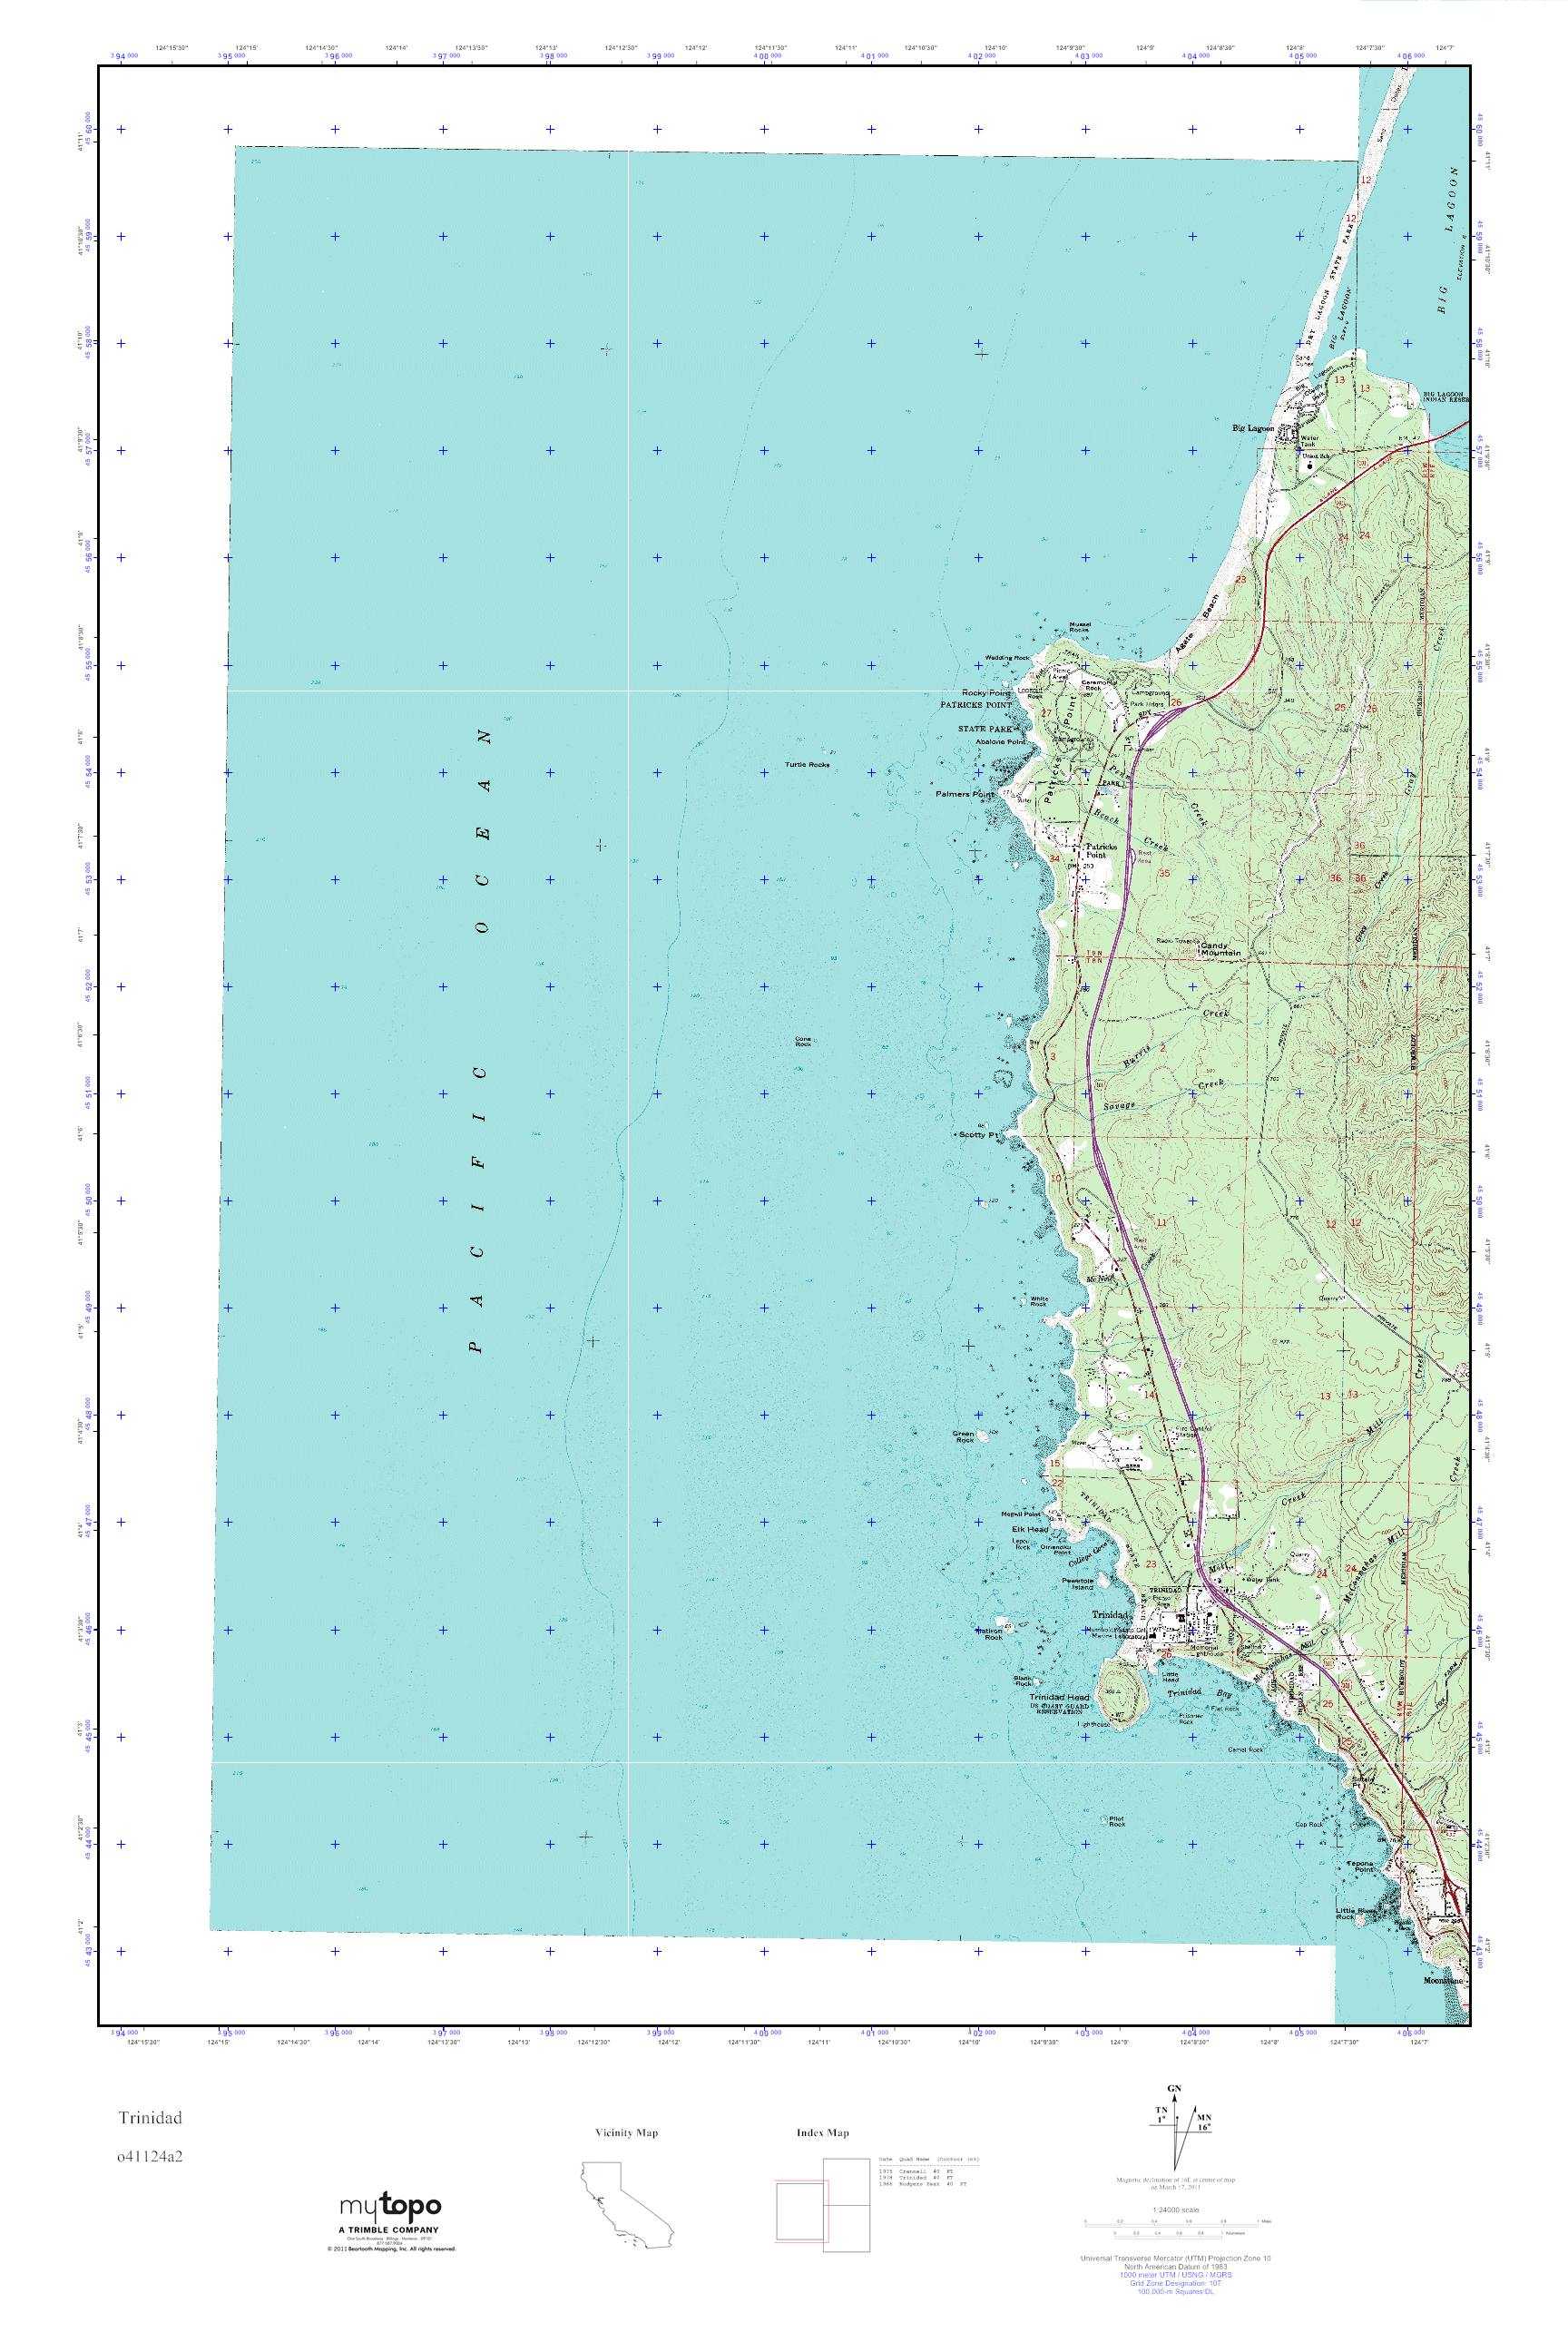 Mytopo Trinidad, California Usgs Quad Topo Map - Trinidad California Map